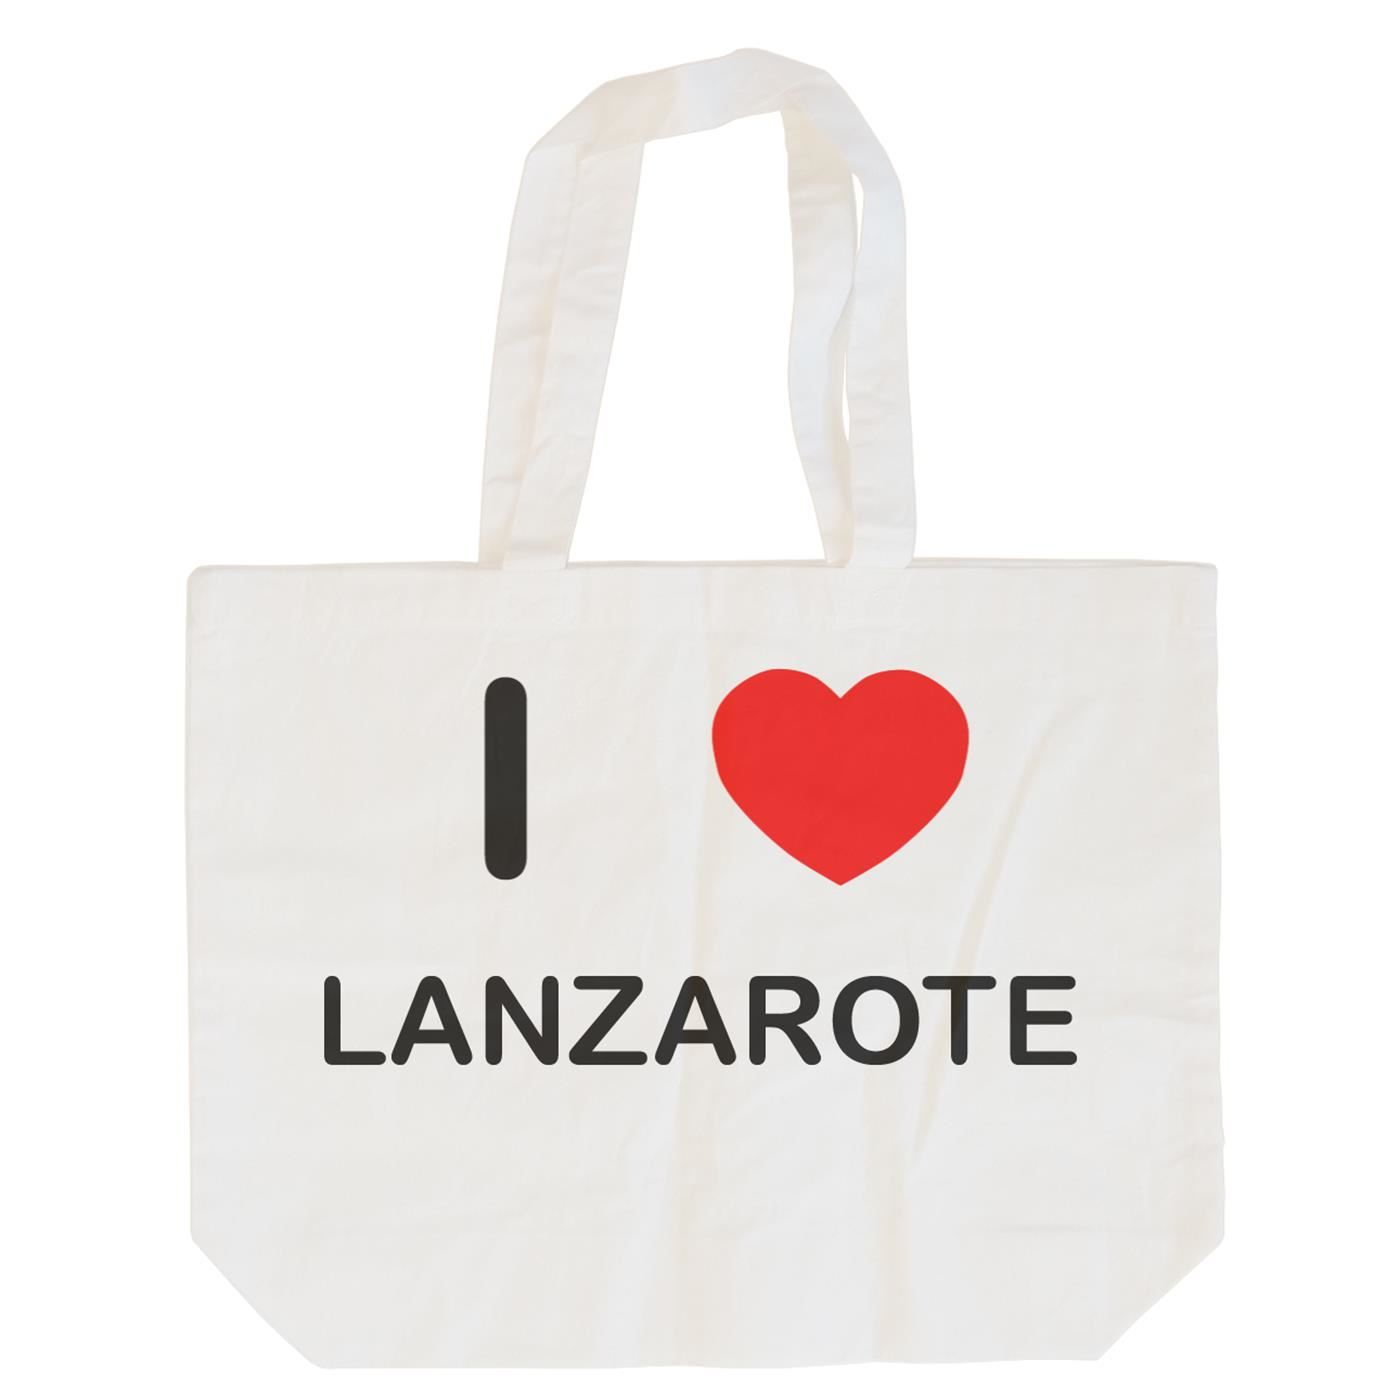 I Love Lanzarote - Cotton Bag   Size choice Tote, Shopper or Sling